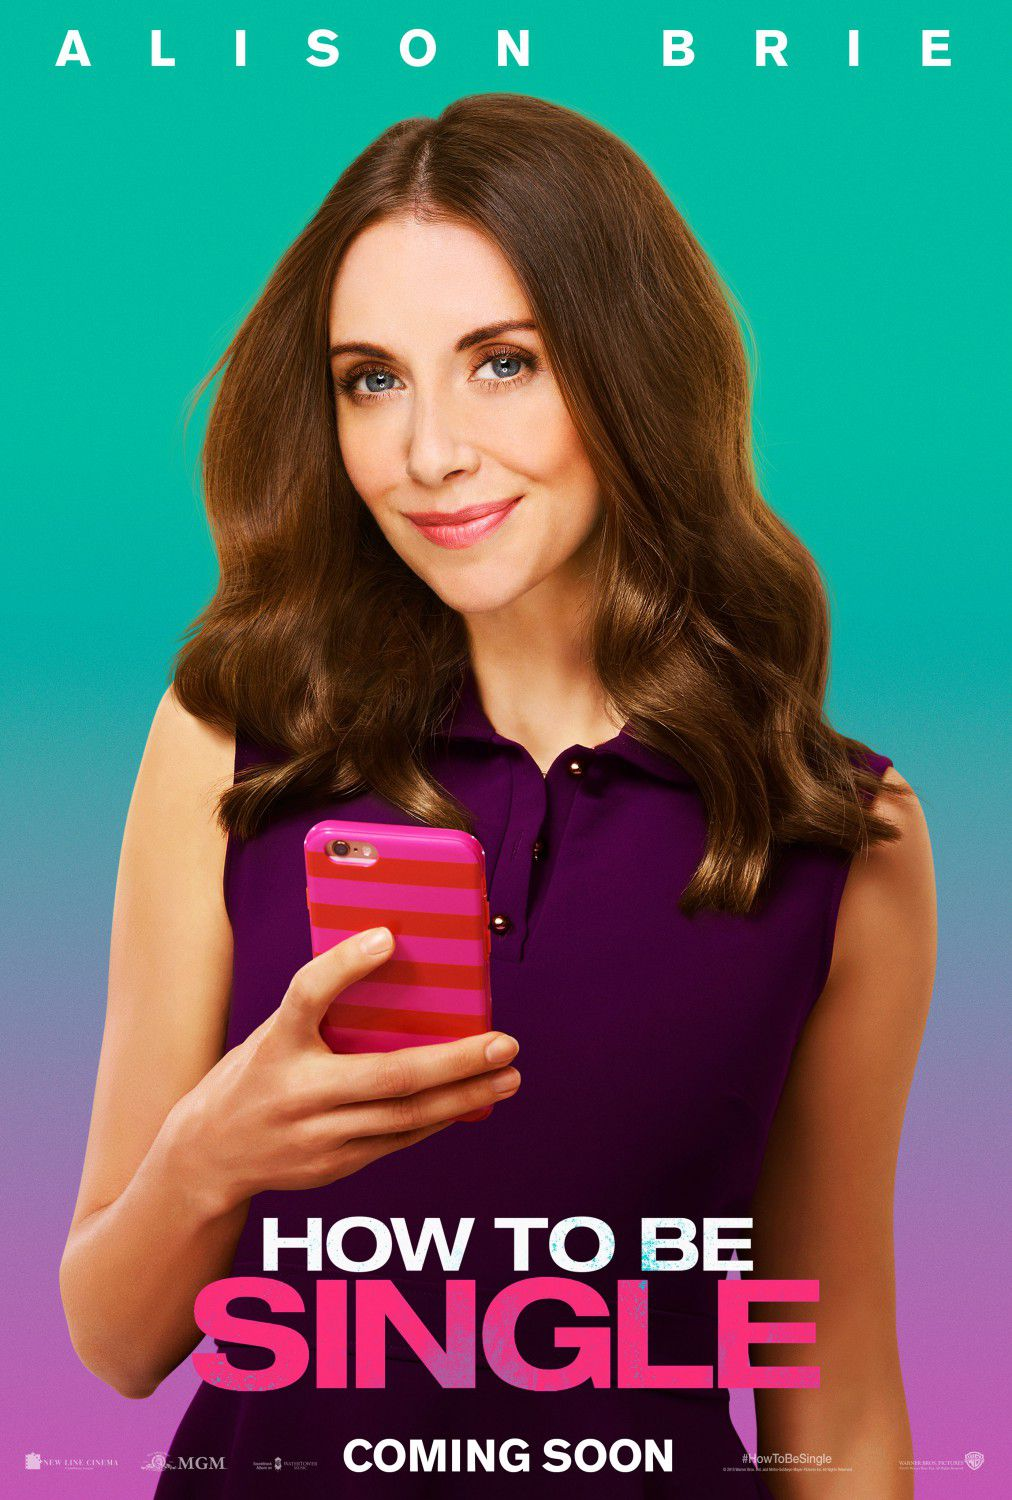 How to be Single - Alison Brie